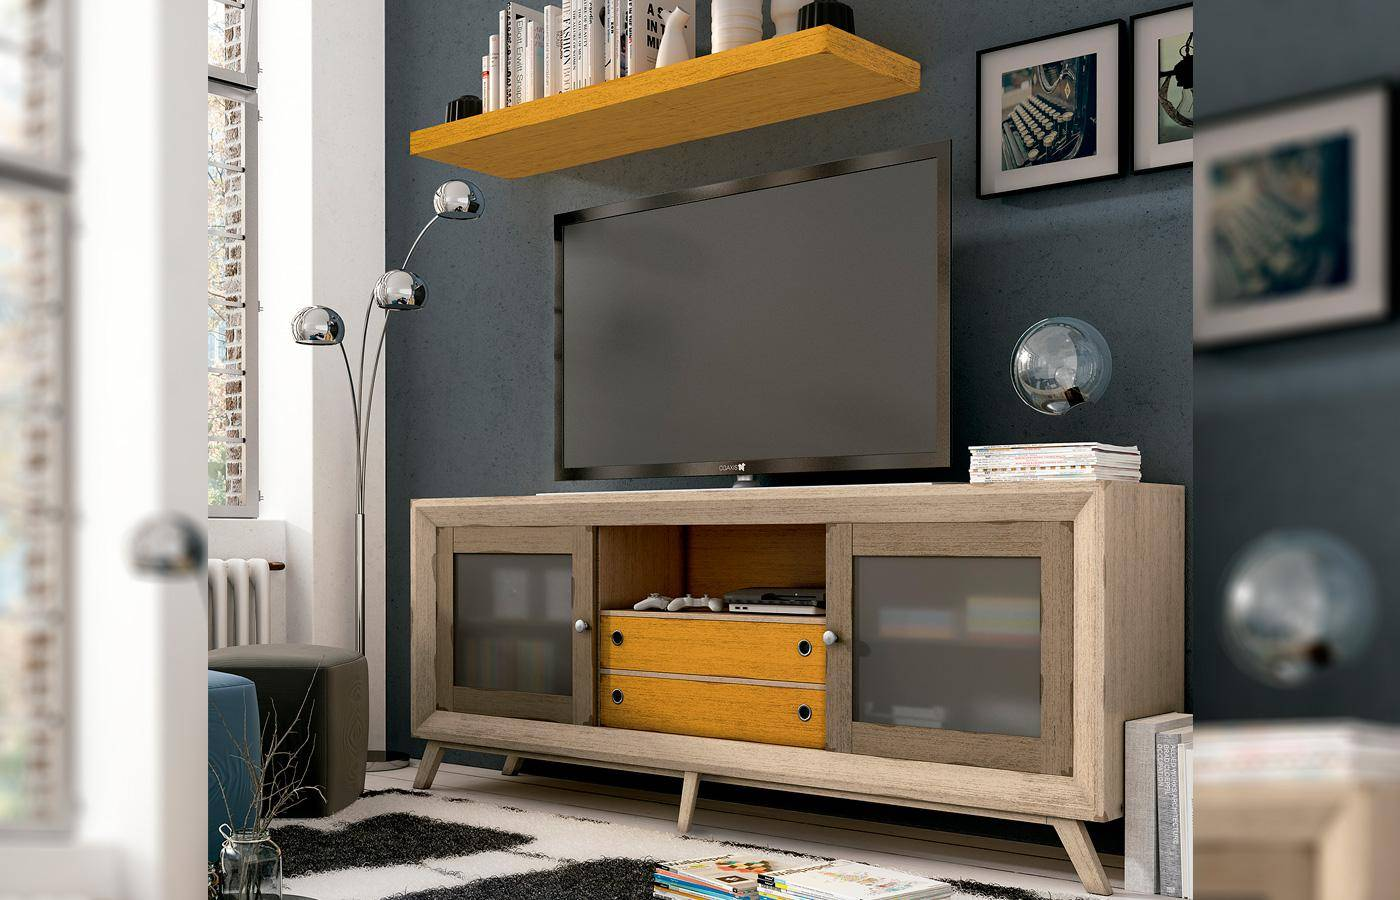 Mueble tv selon dismobel for Mueble tv multimedia